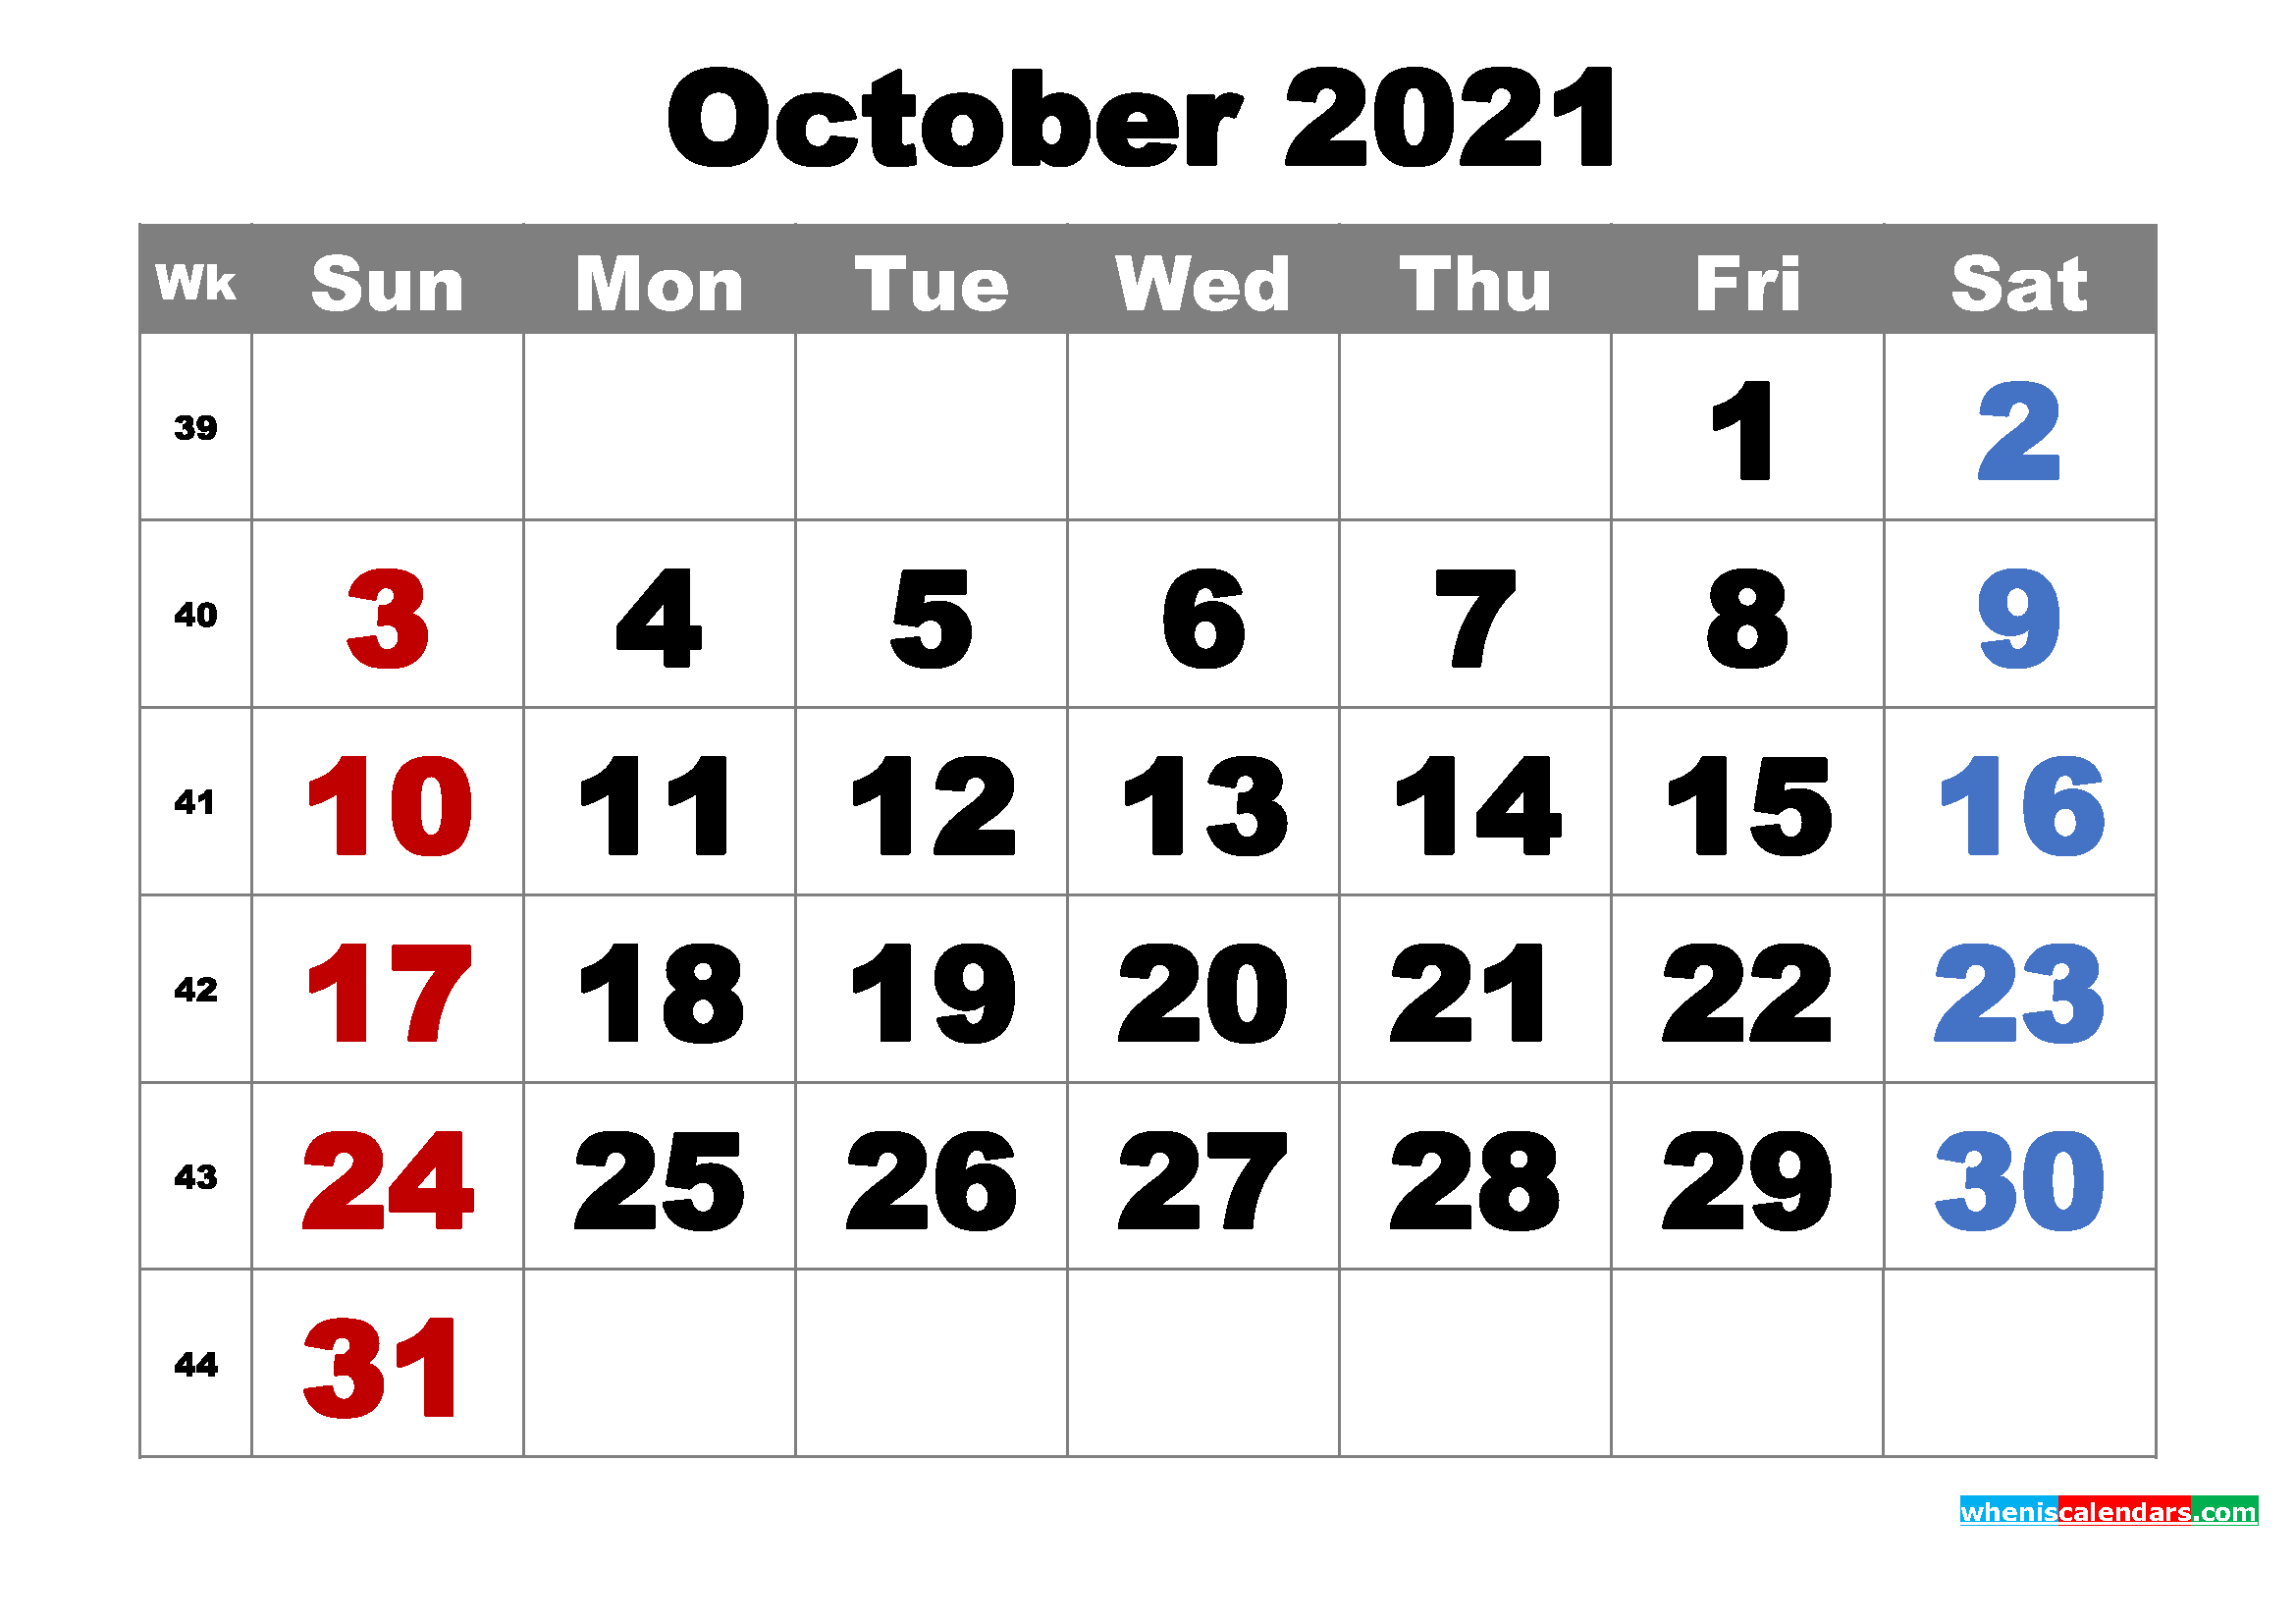 Free Printable October 2021 Calendar Word, PDF, Image